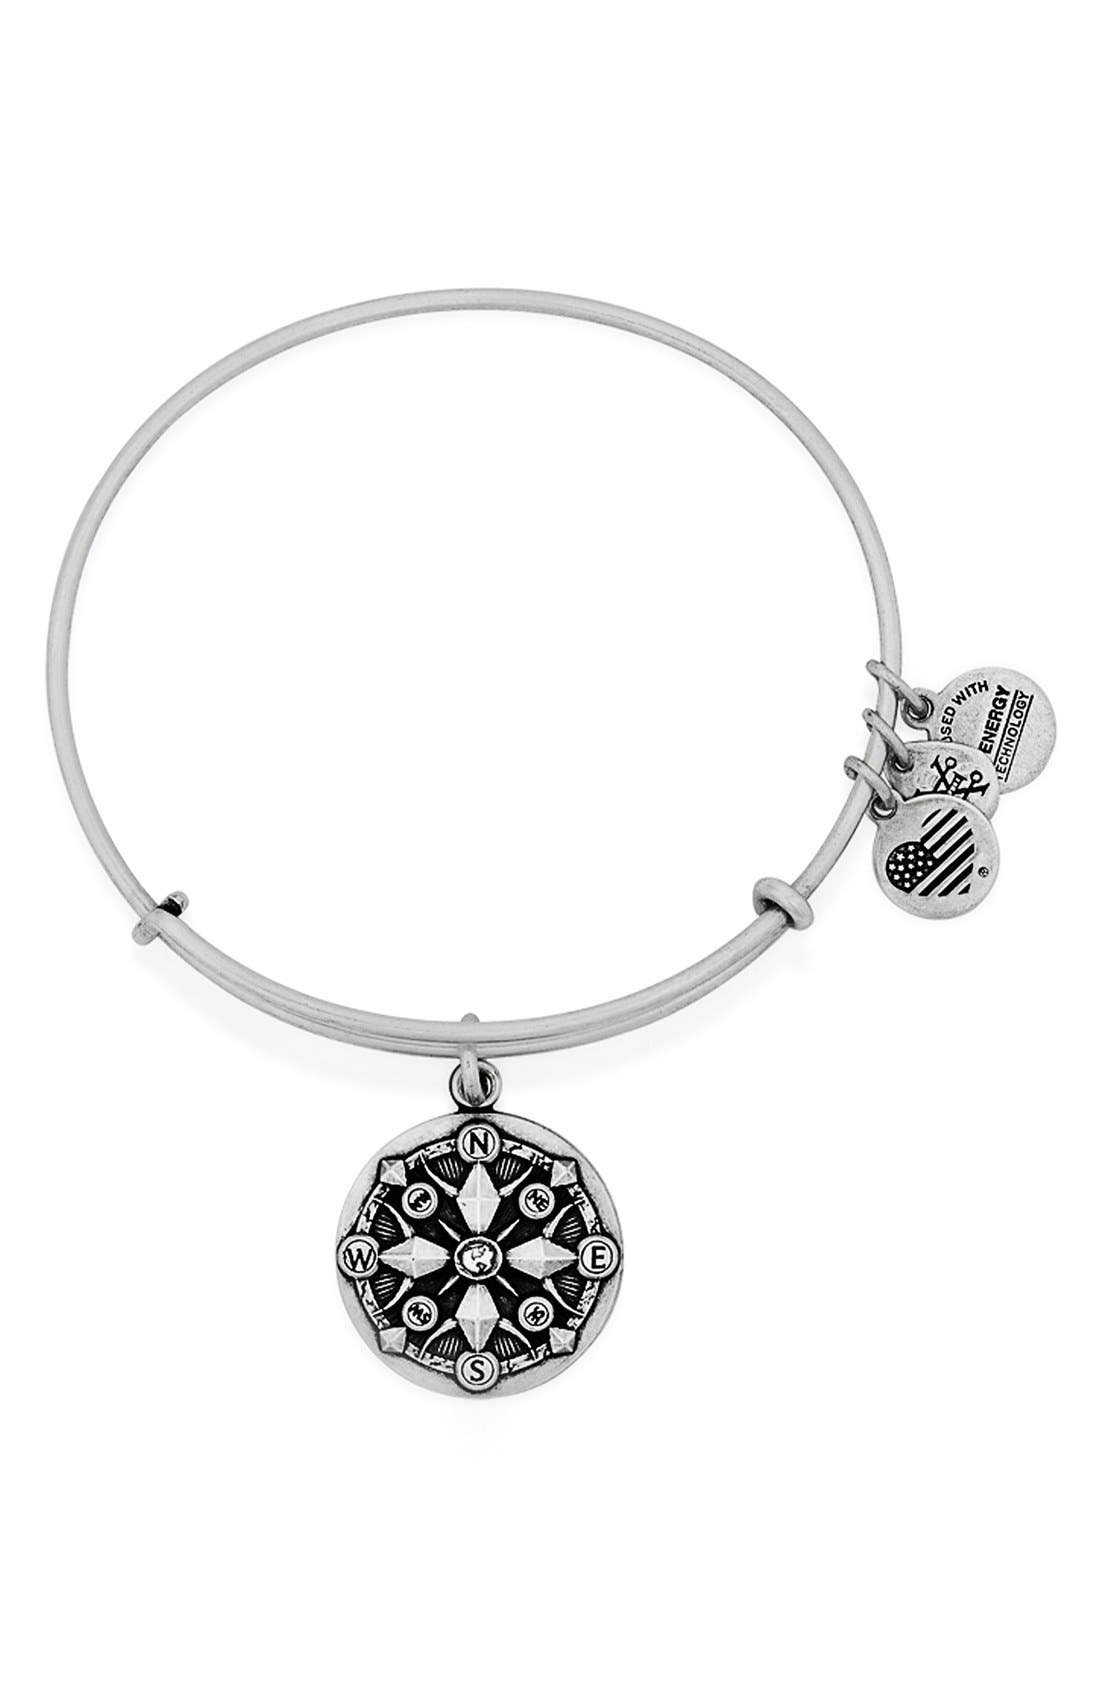 Alternate Image 1 Selected - Alex and Ani 'Compass' Adjustable Wire Bangle